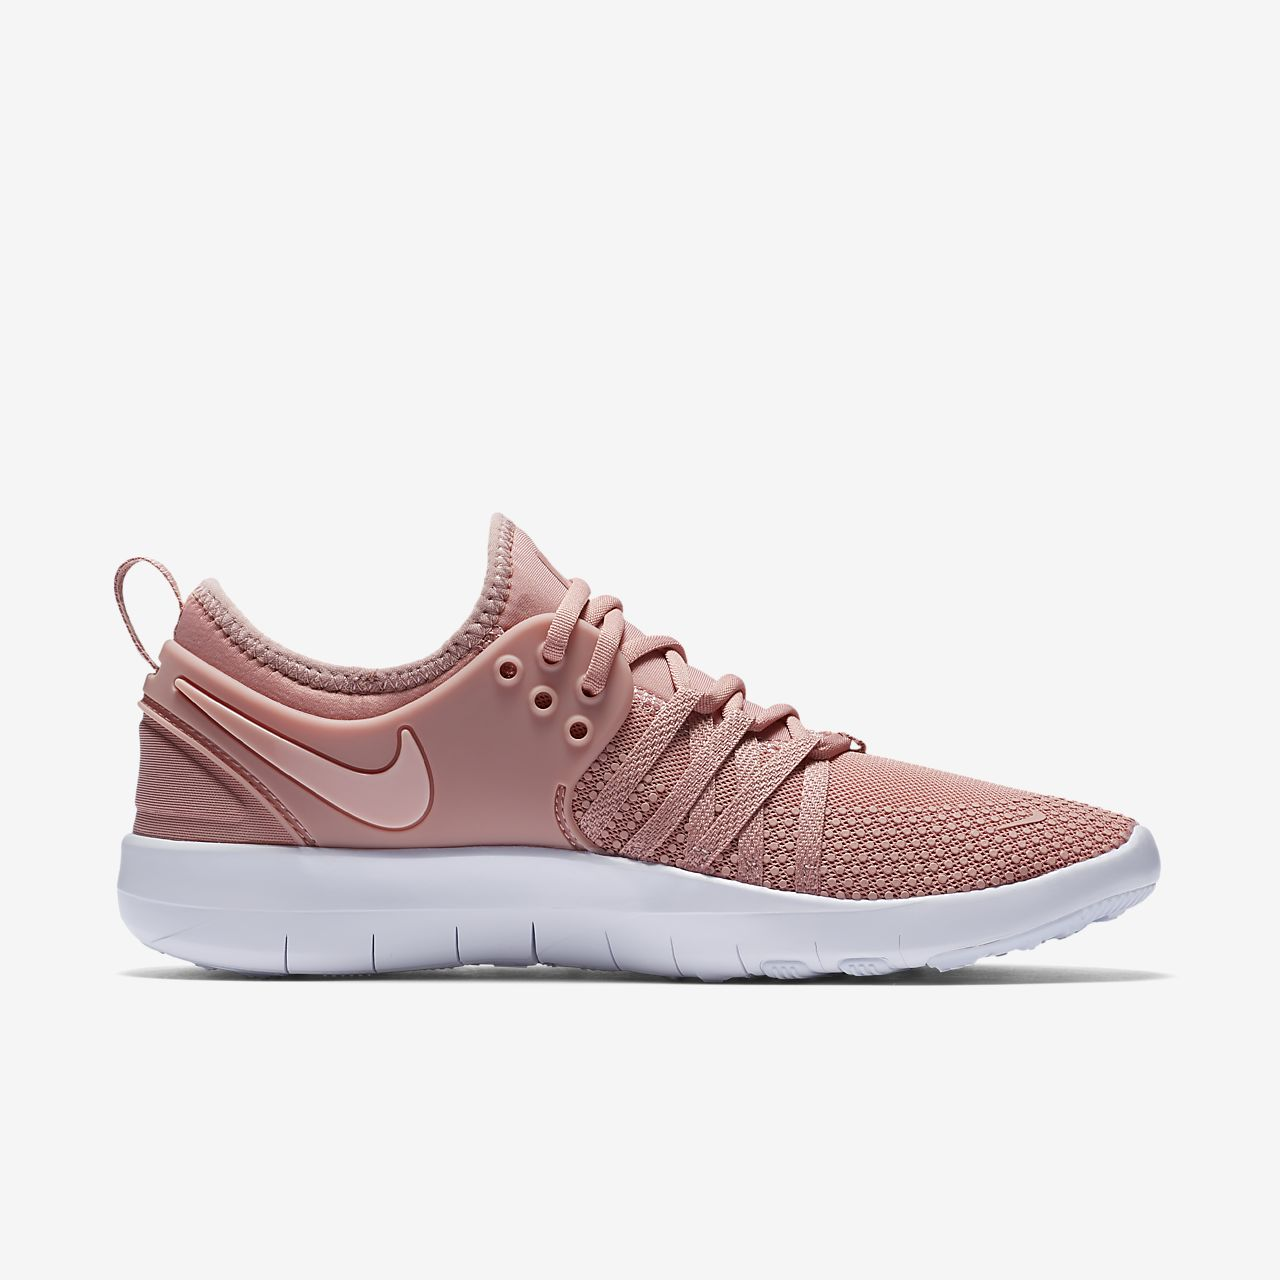 ... Nike Free TR7 Women's Training Shoe